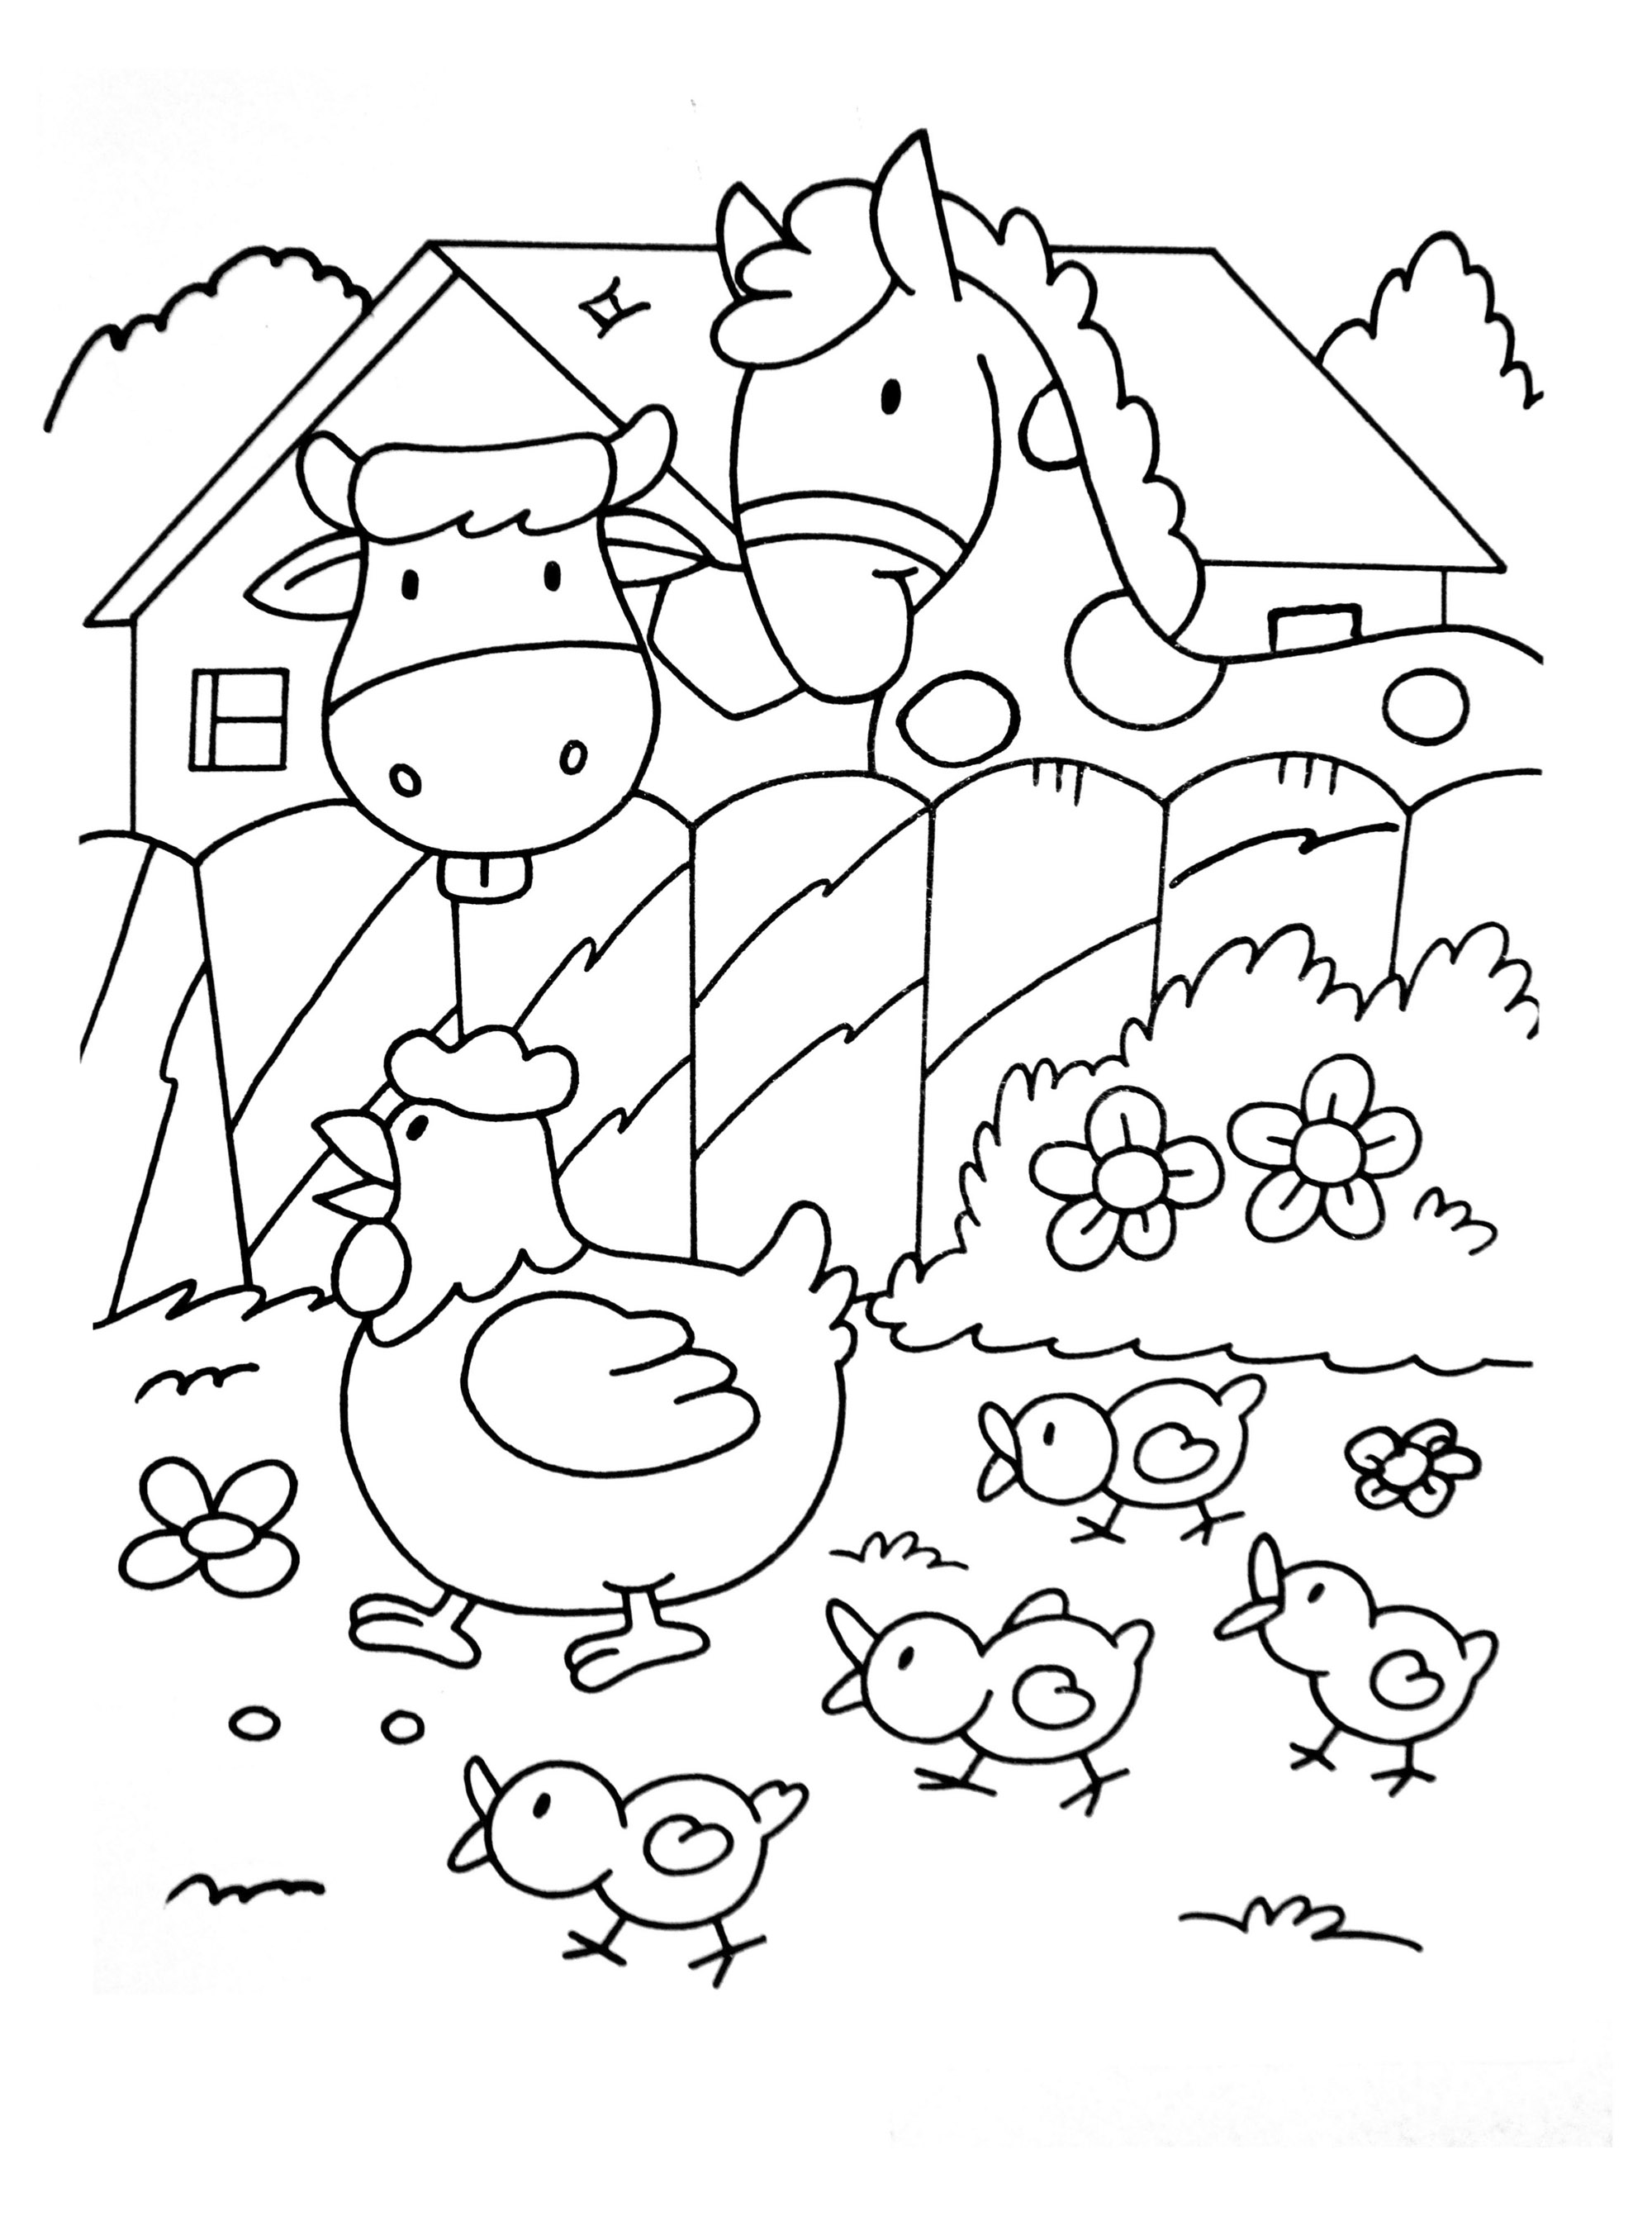 Farm to download - Farm Kids Coloring Pages